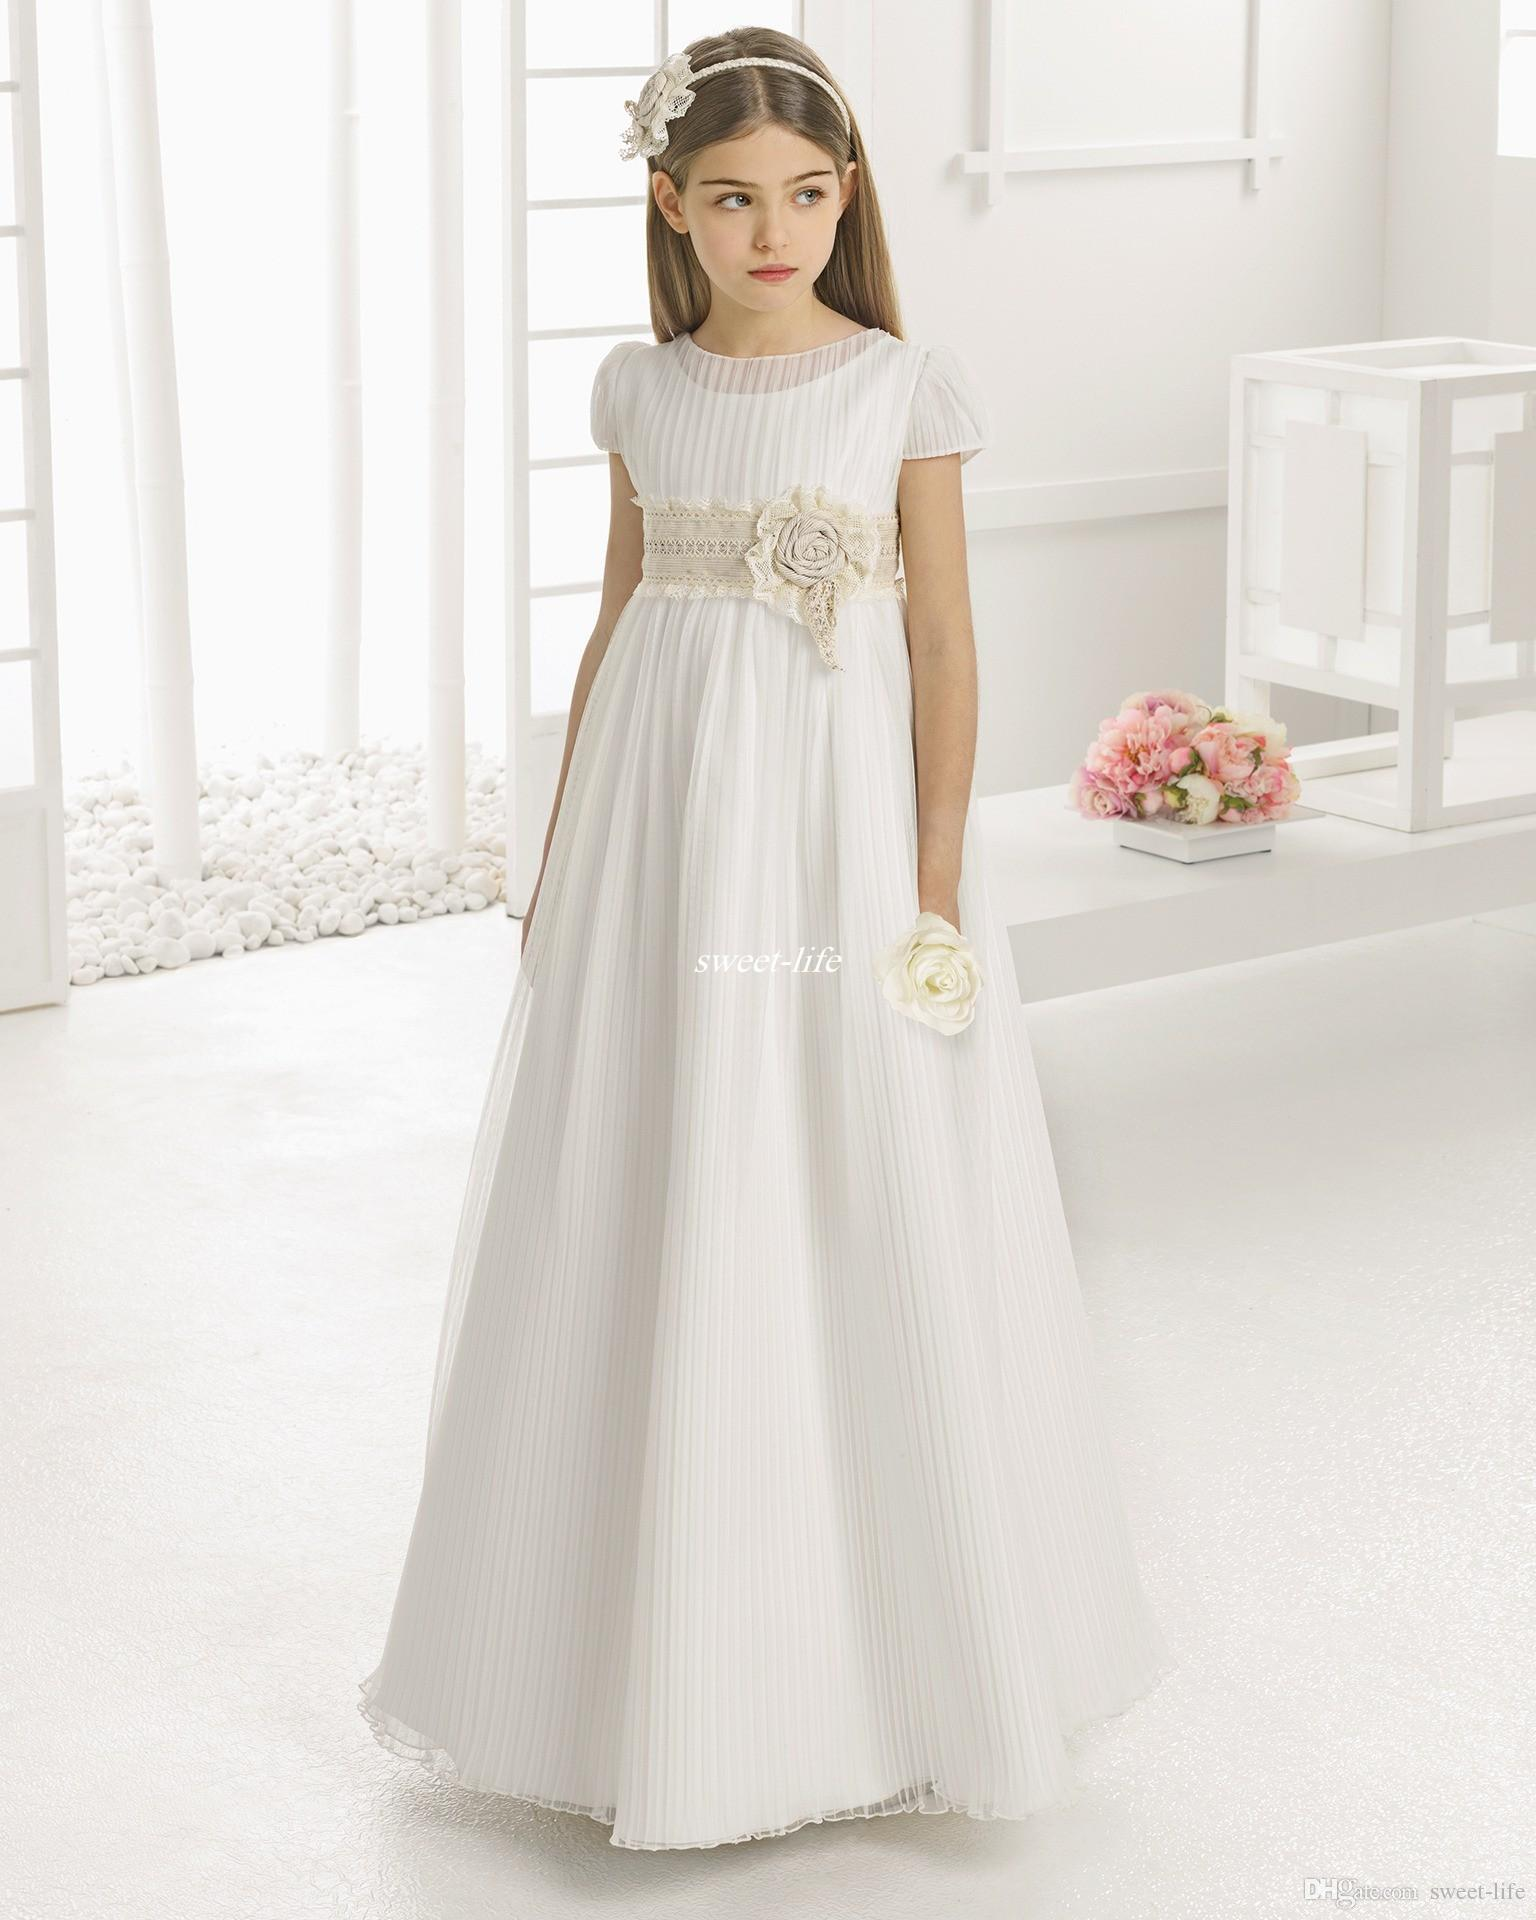 Vintage Flower Girl Dresses For Wedding Empire Waist Short ...